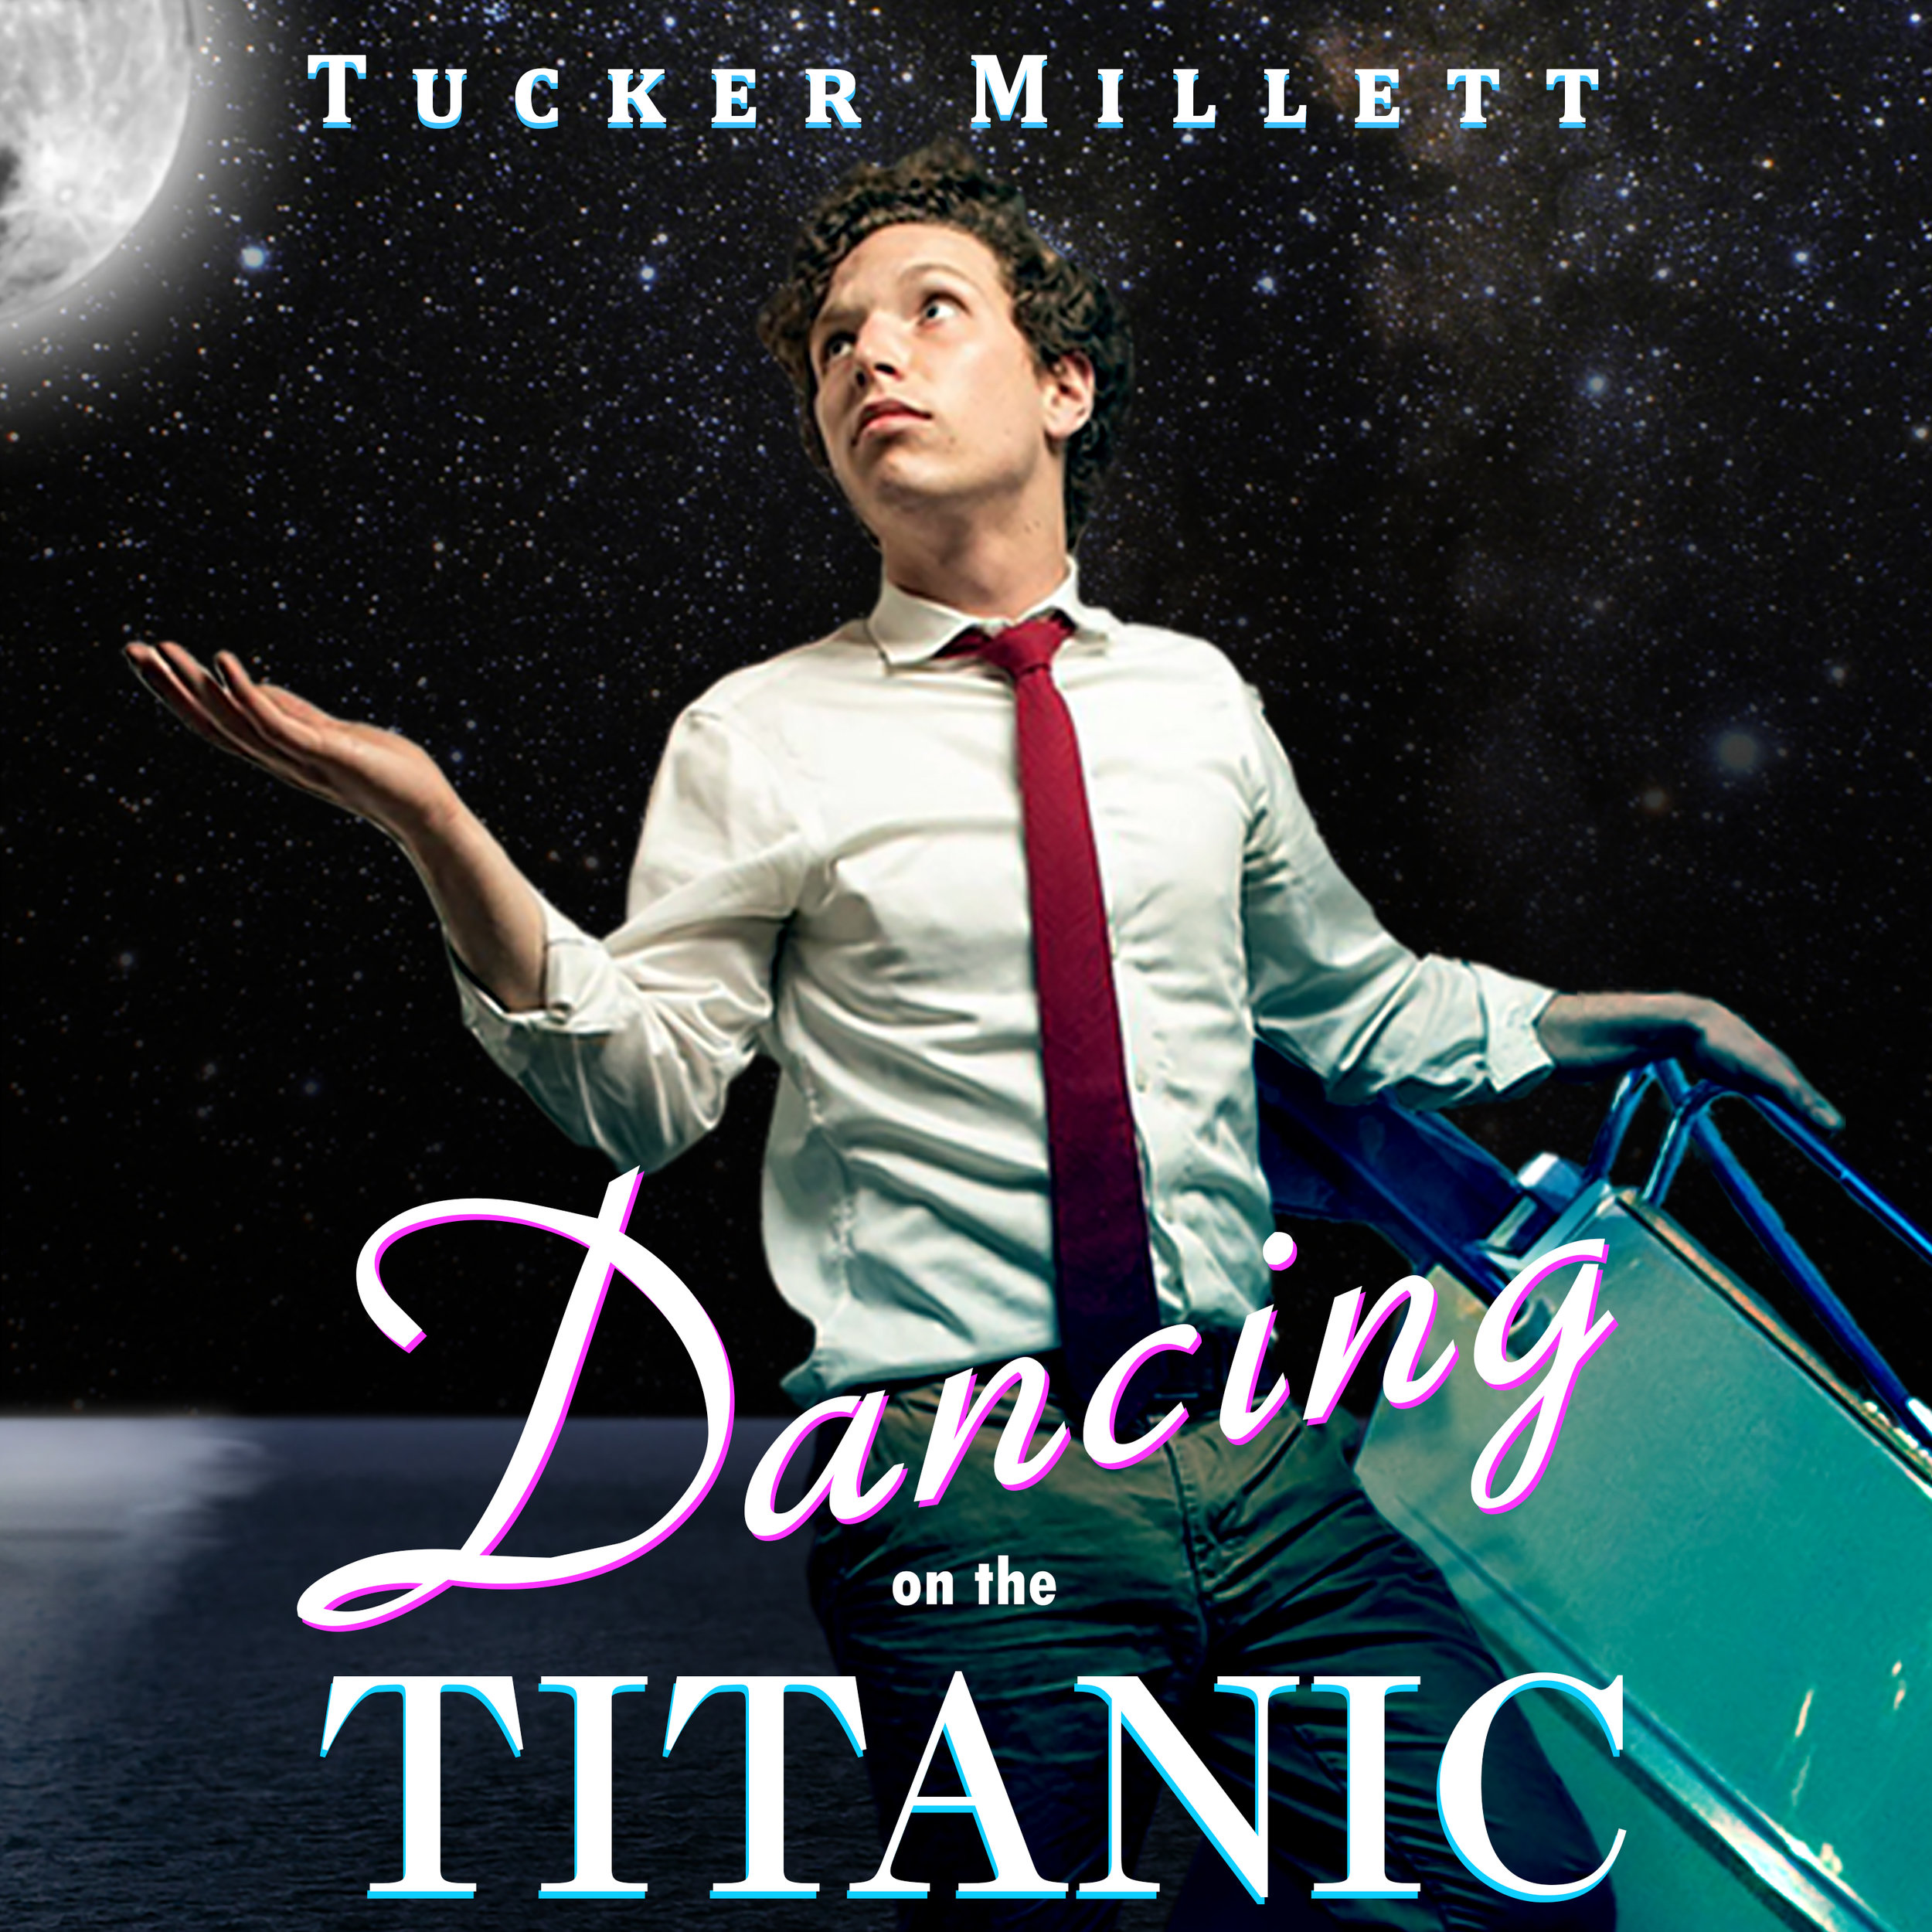 Dancing on the Titanic - available on Apple Music, Spotify, Tidal & many more! JULY 30, 2018!  Album Artwork by James Webb (IG- @aclysm)